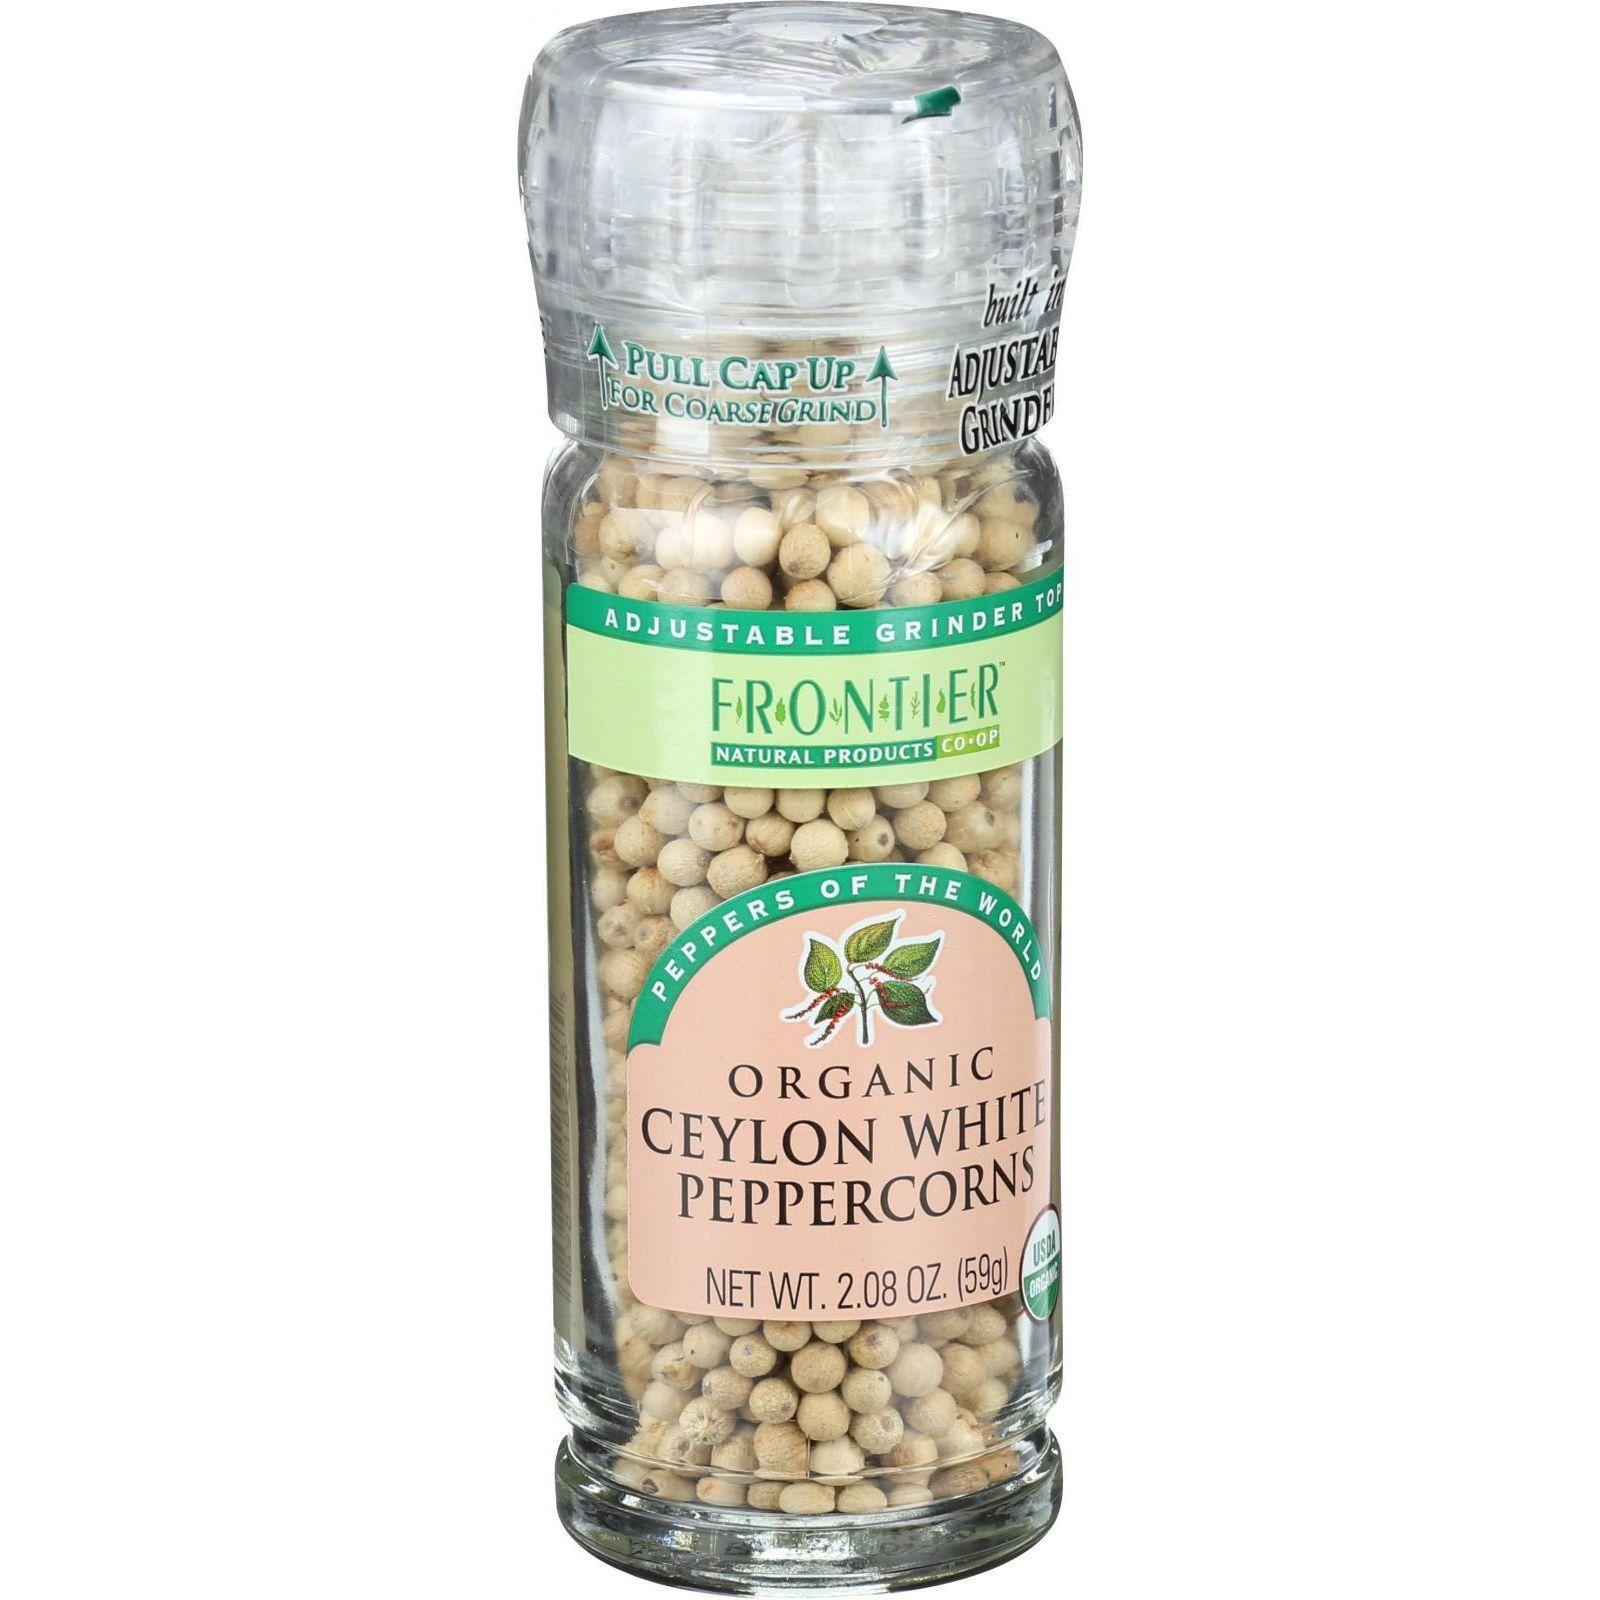 Frontier Herb Peppercorns - Organic - Whole - White - Grinder Bottle - 2.08 Oz - Case Of 6